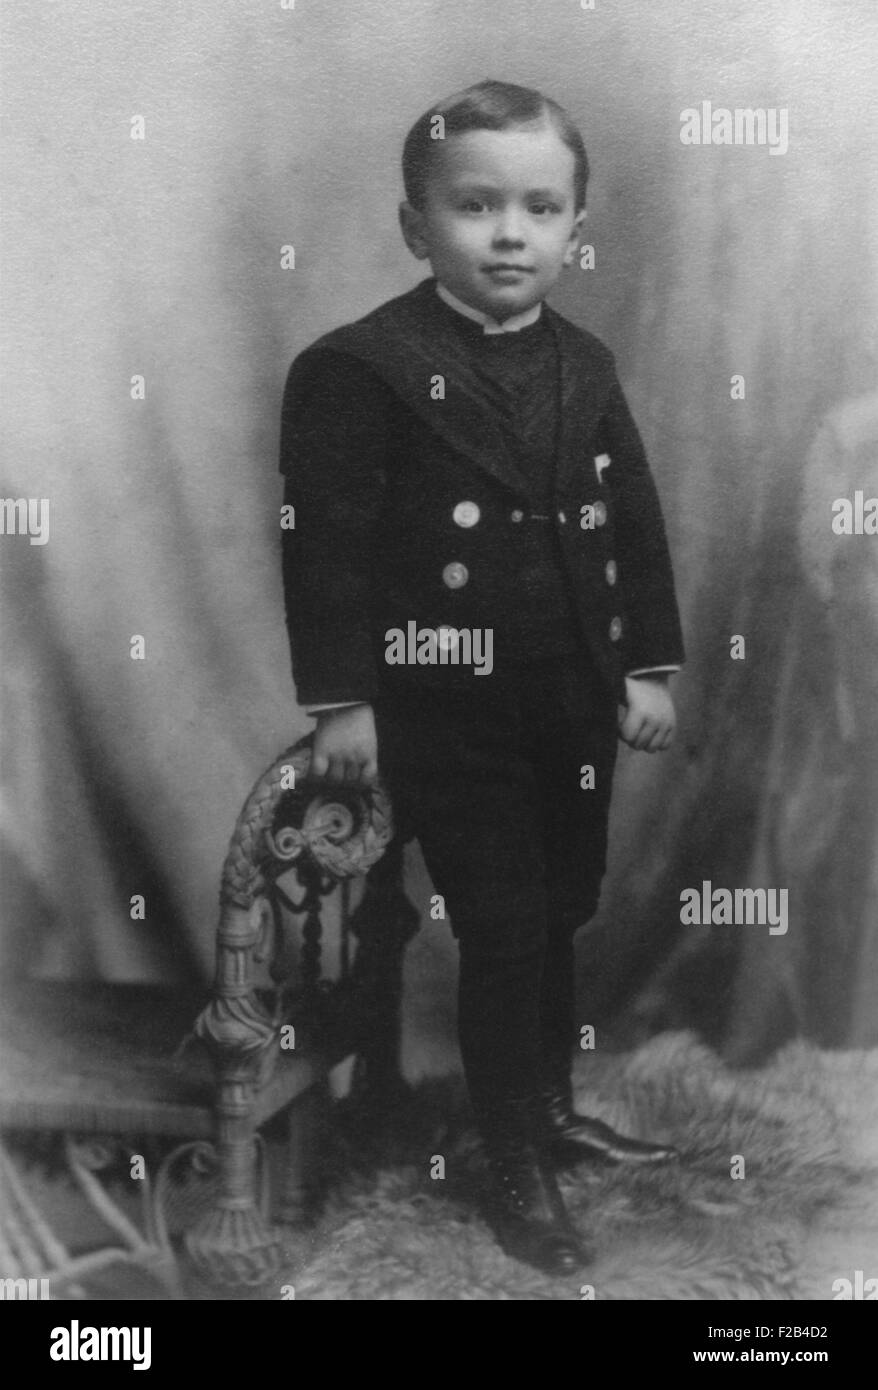 J. Edgar Hoover at age 4, in 1899. The future FBI director was born in 1895 in Washington, D.C. - (BSLOC_2015_1 - Stock Image